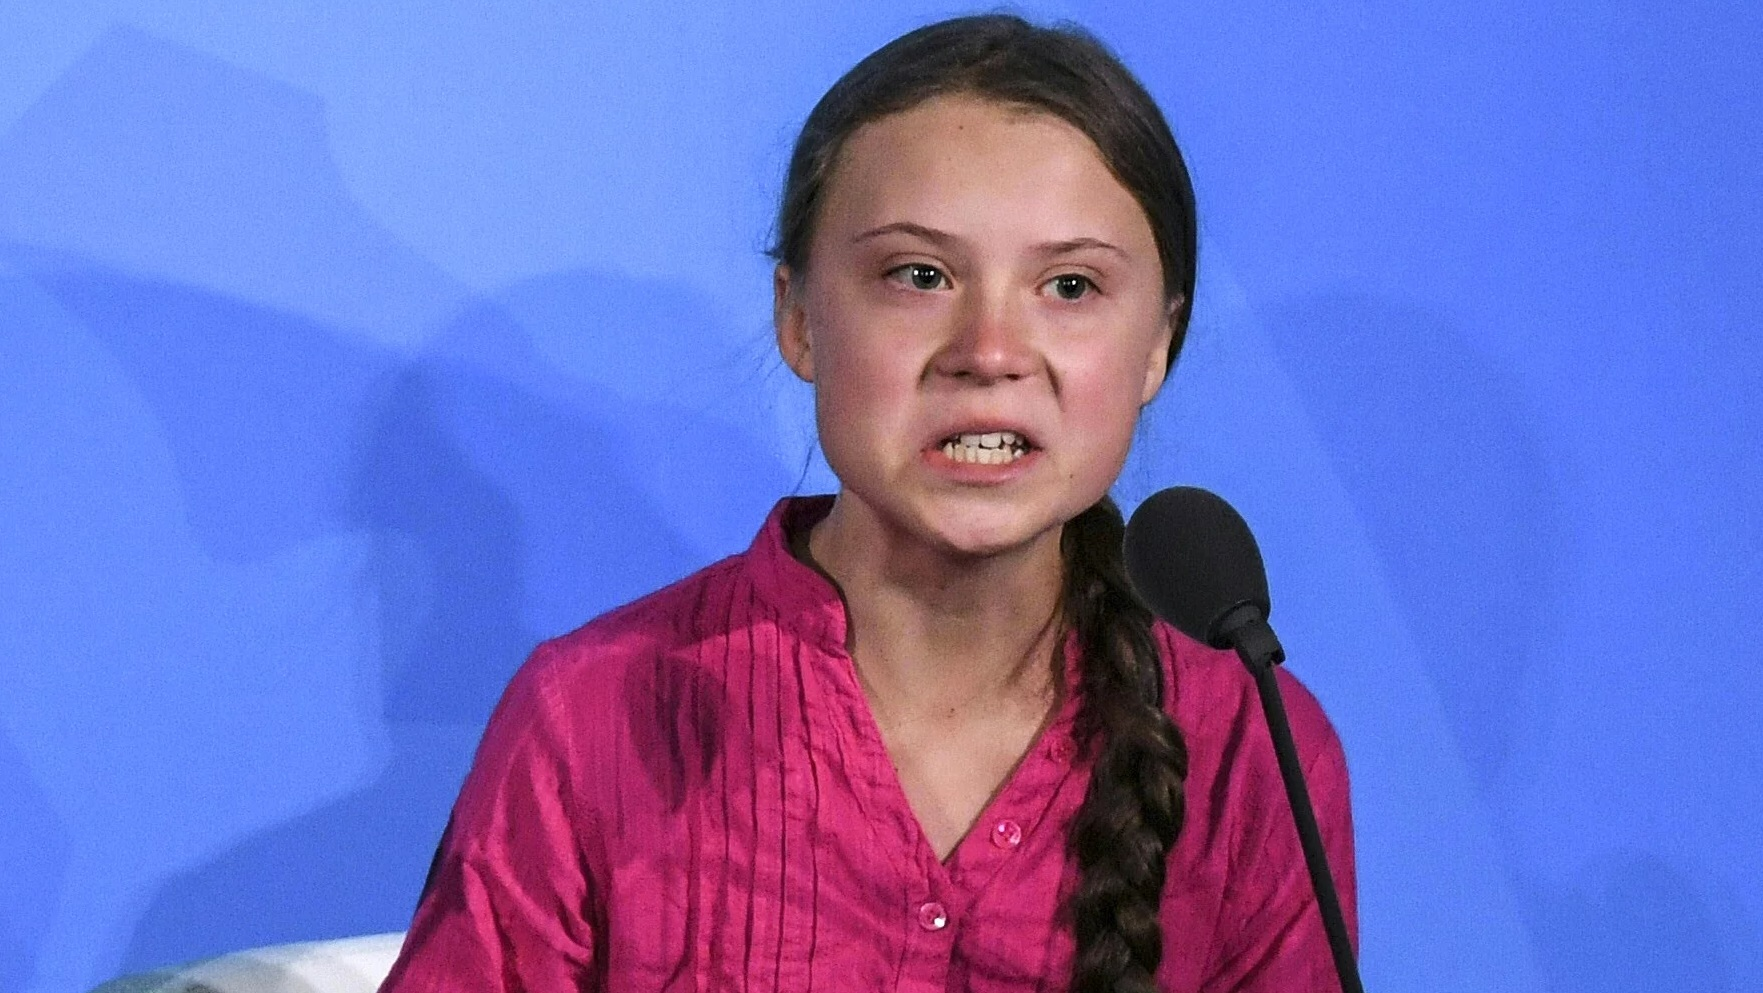 Image: Greta Thunberg: An actress that's as fake as the climate change hoax